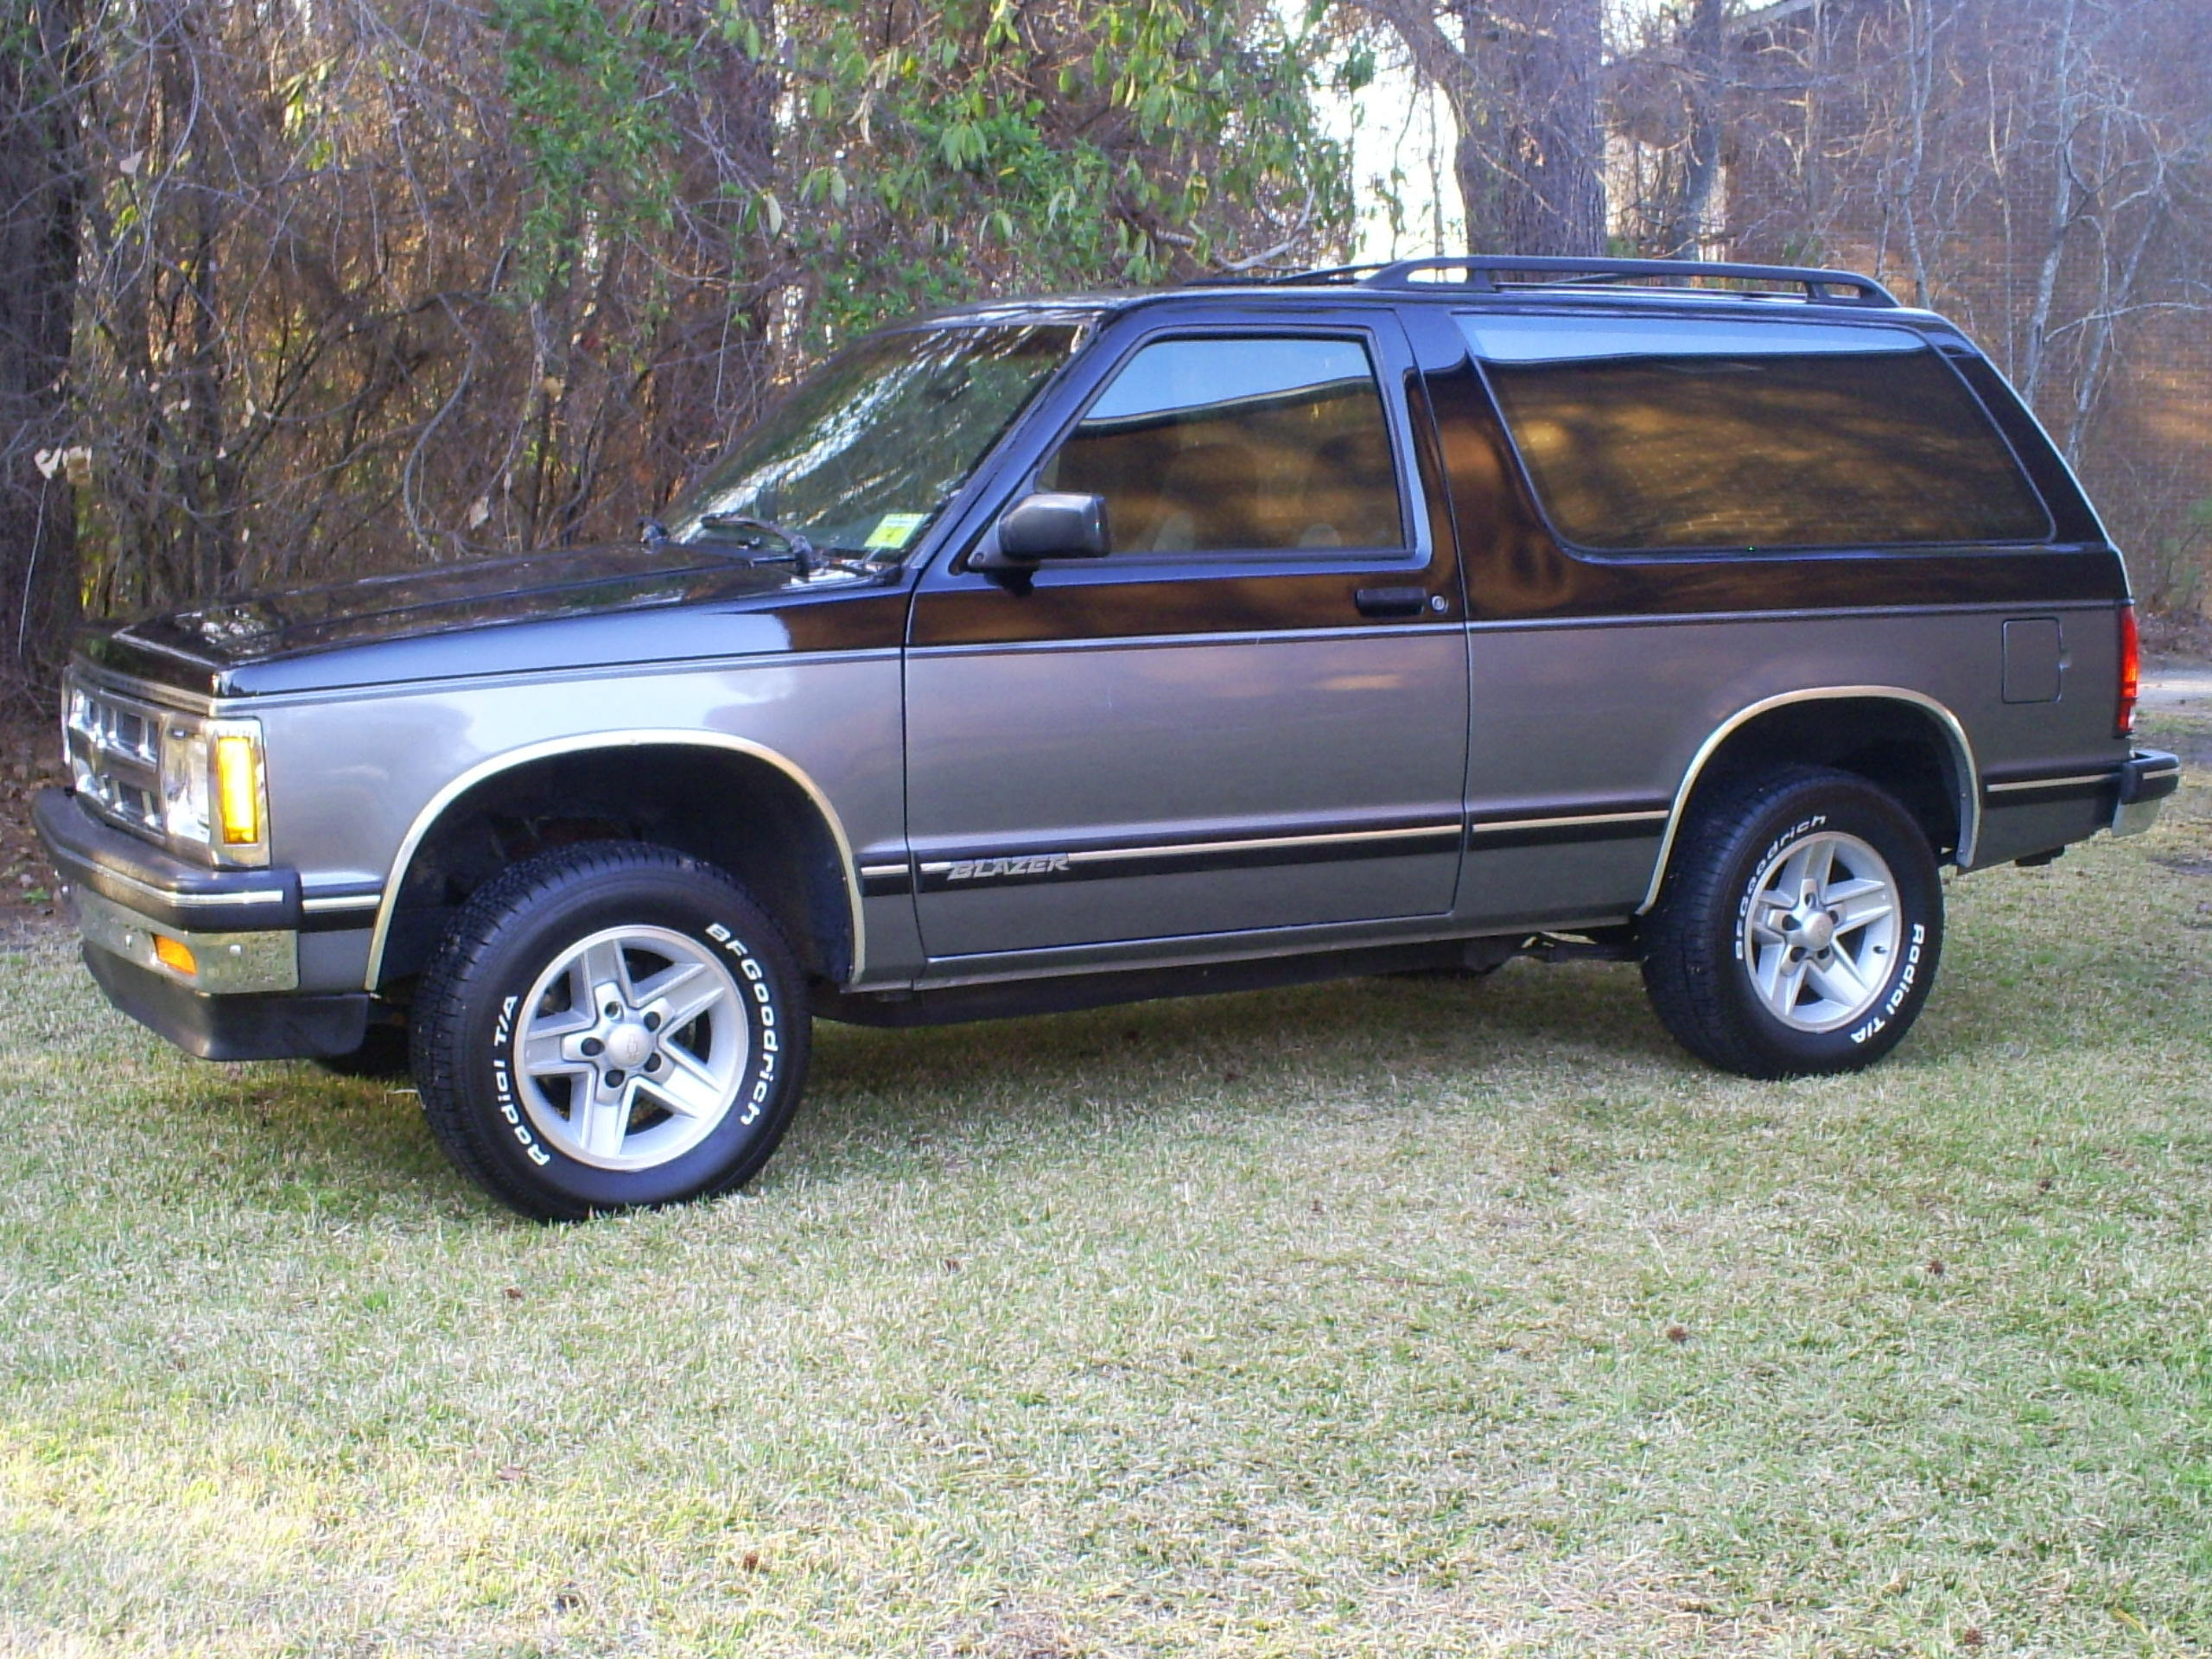 Original on 1984 Chevrolet S10 Blazer